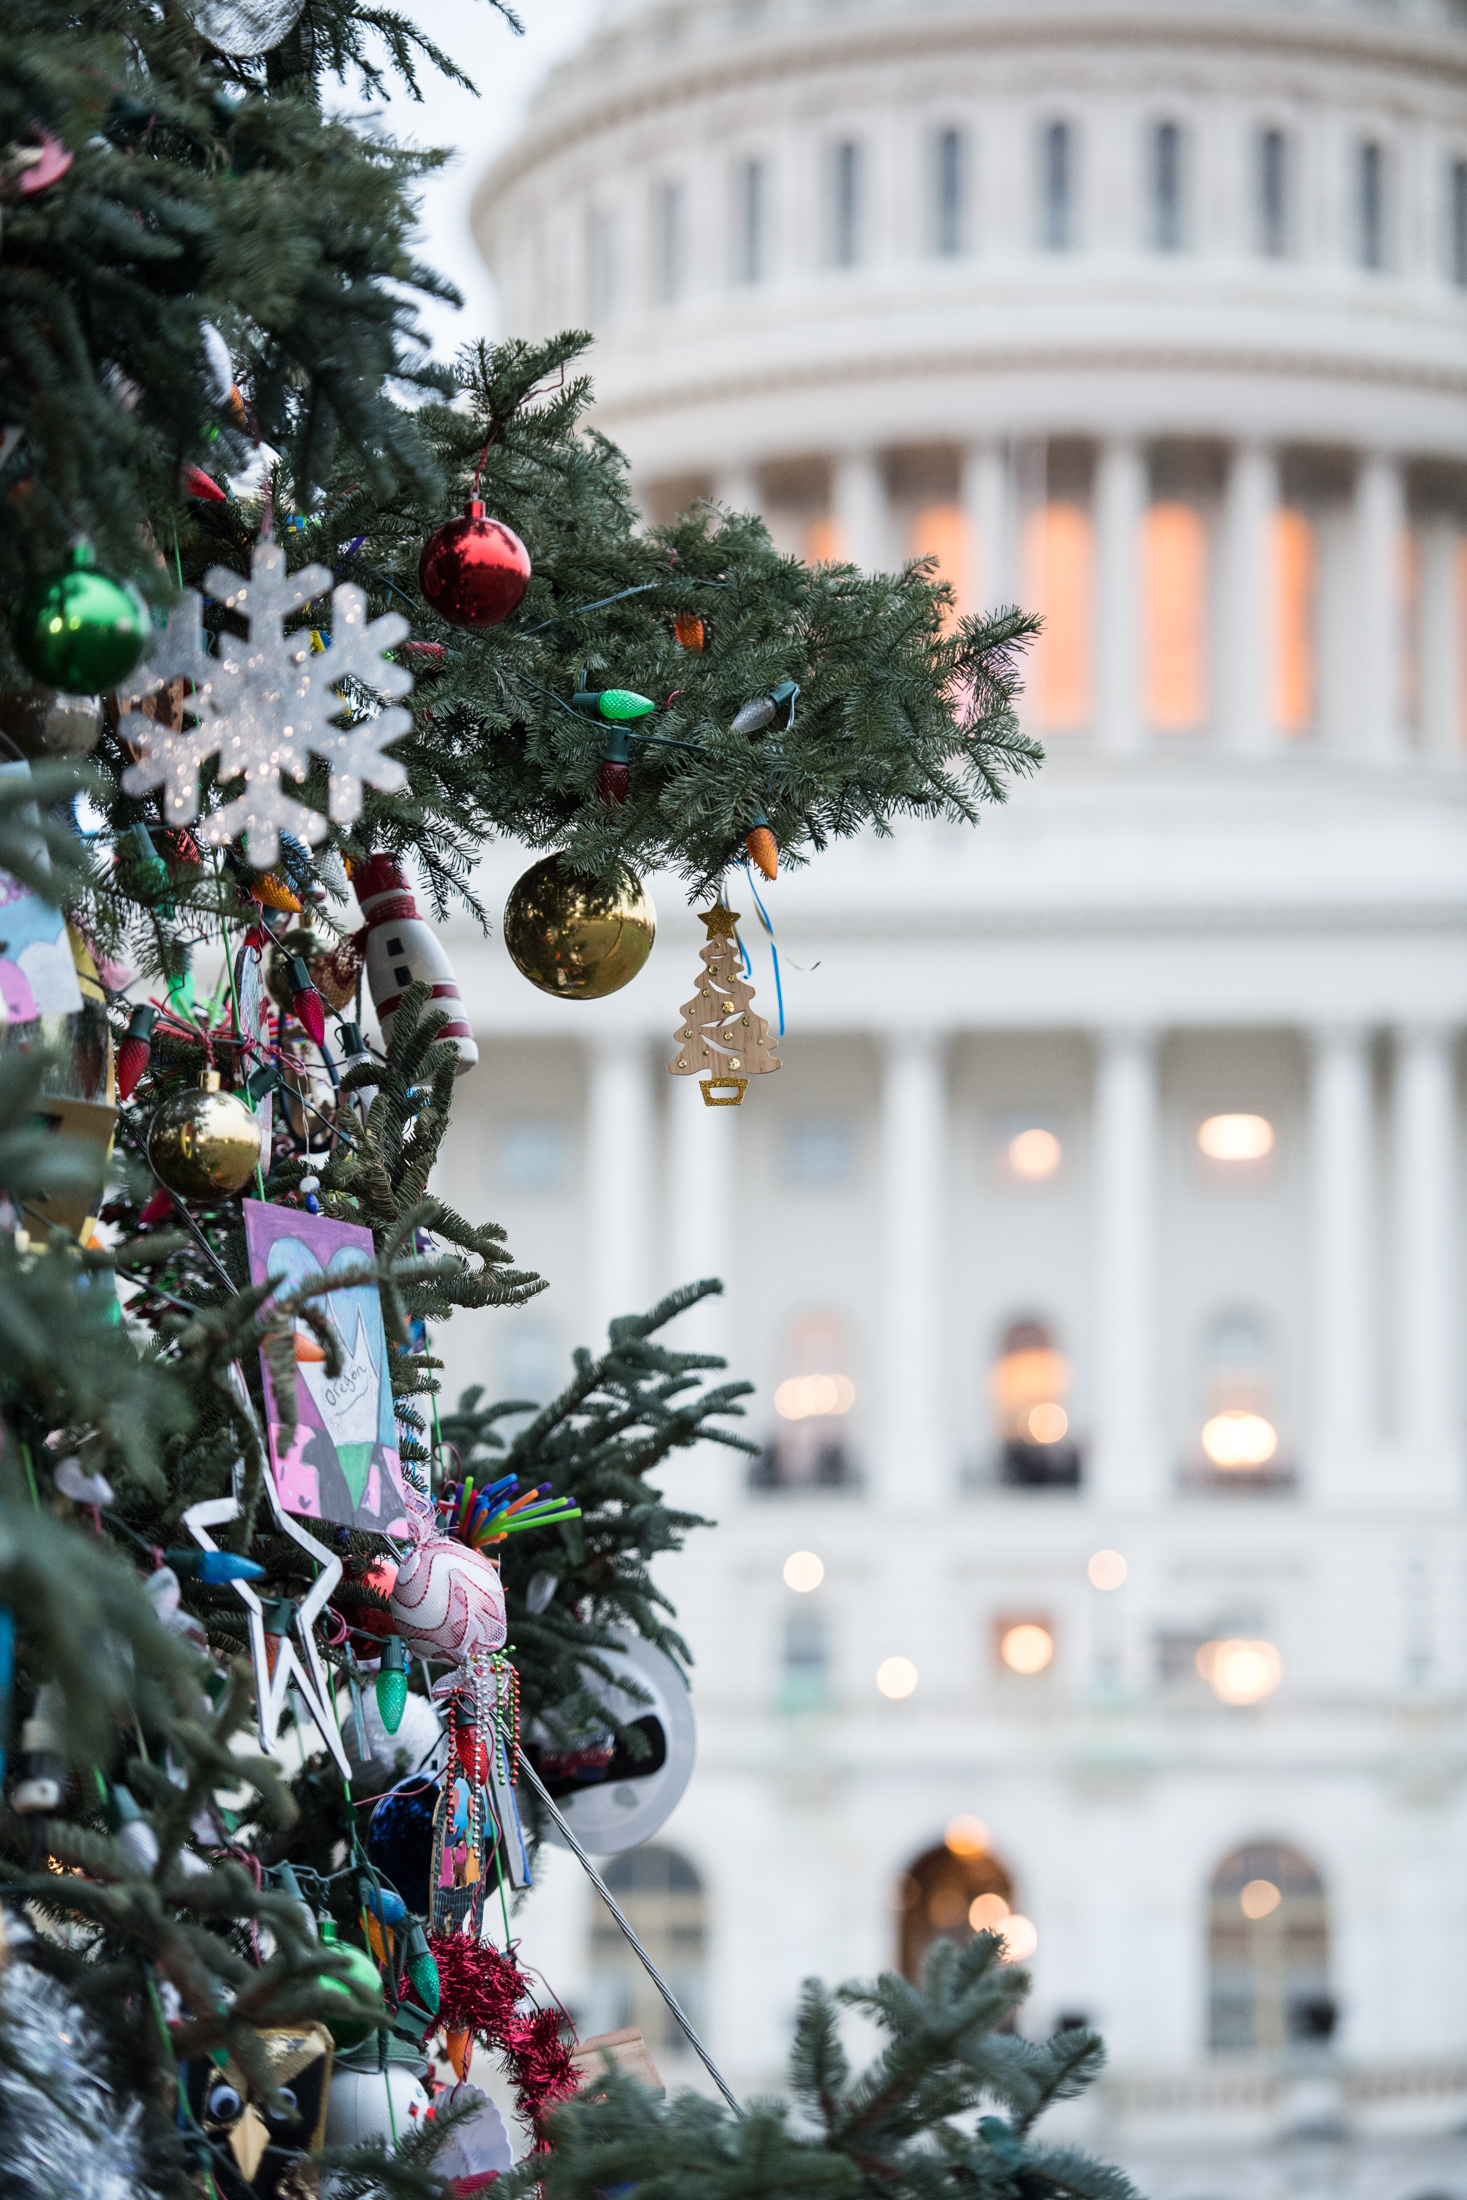 Handmade ornaments decorate the Capitol Christmas Tree